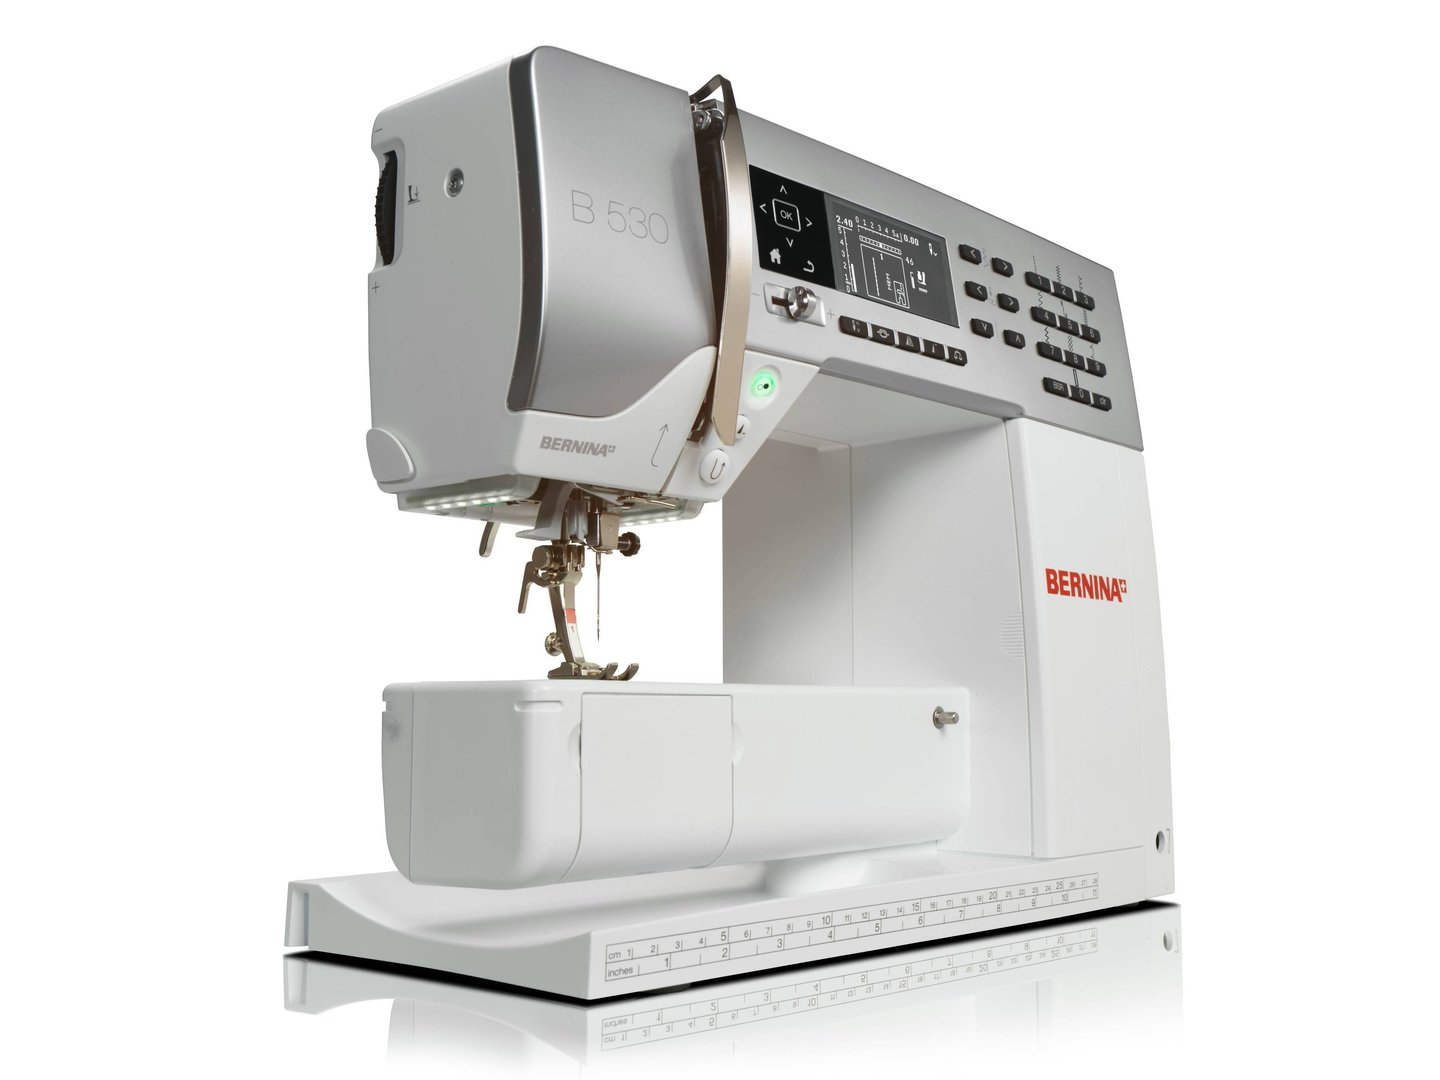 BERNINA B 530 Nähmaschine